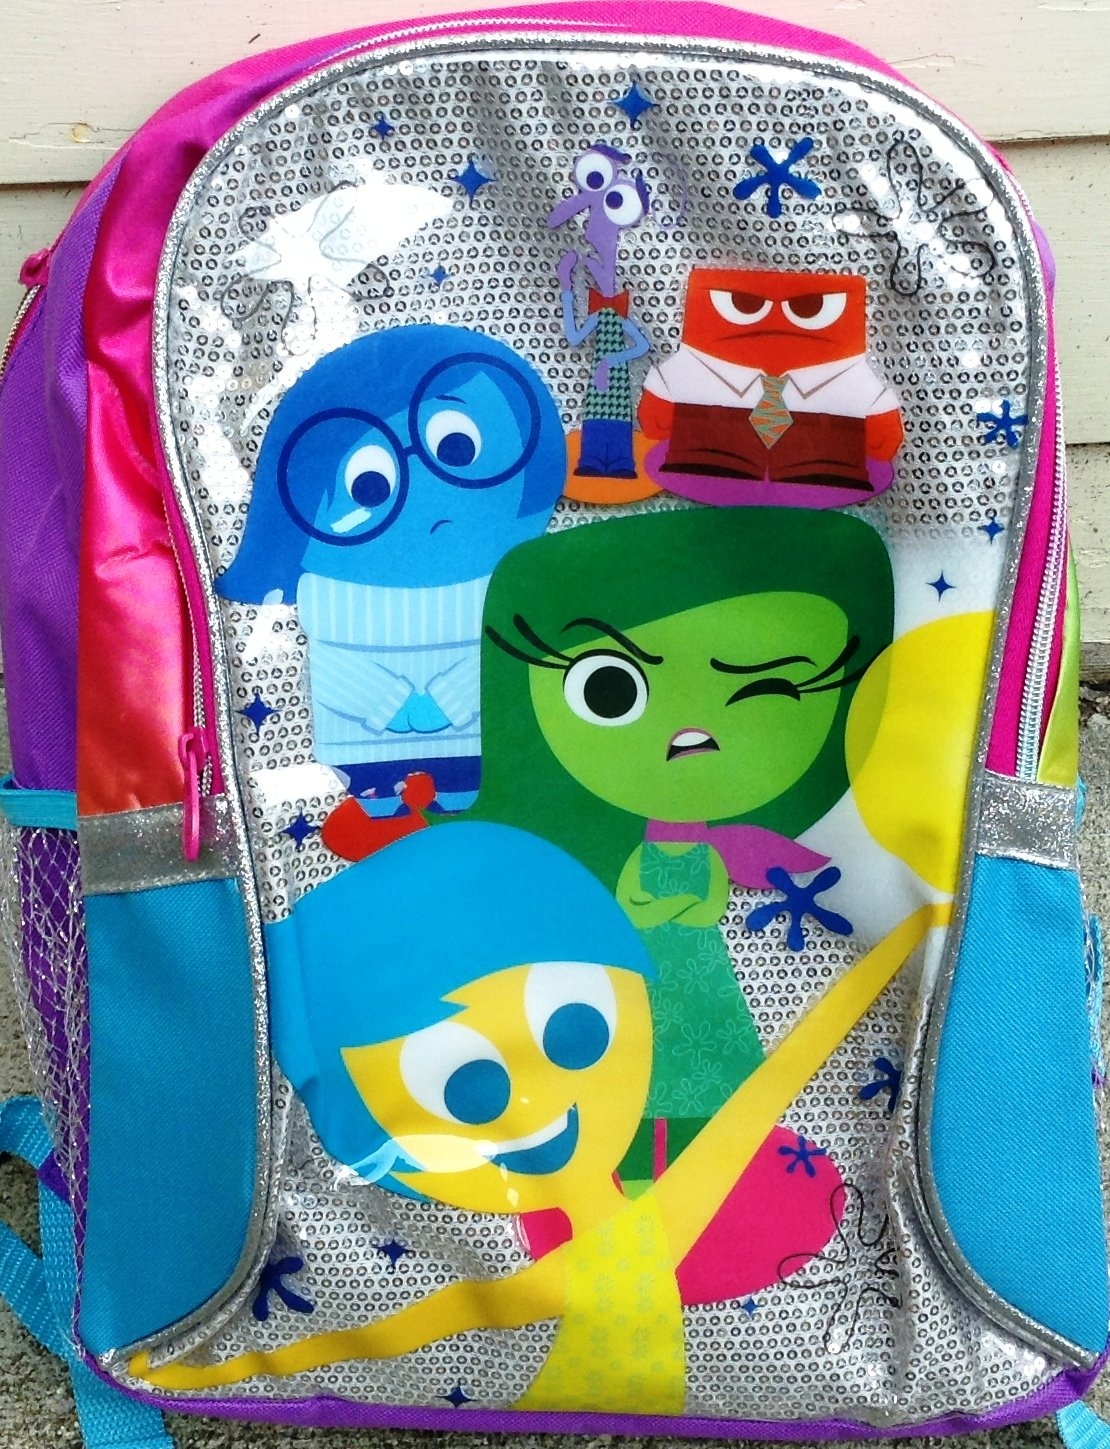 INSIDE OUT Sparkle Backpack features Joy, Disgust, Sadness, Fear, and Anger - the whole crew! Pink, purple, teal, and silver accents.